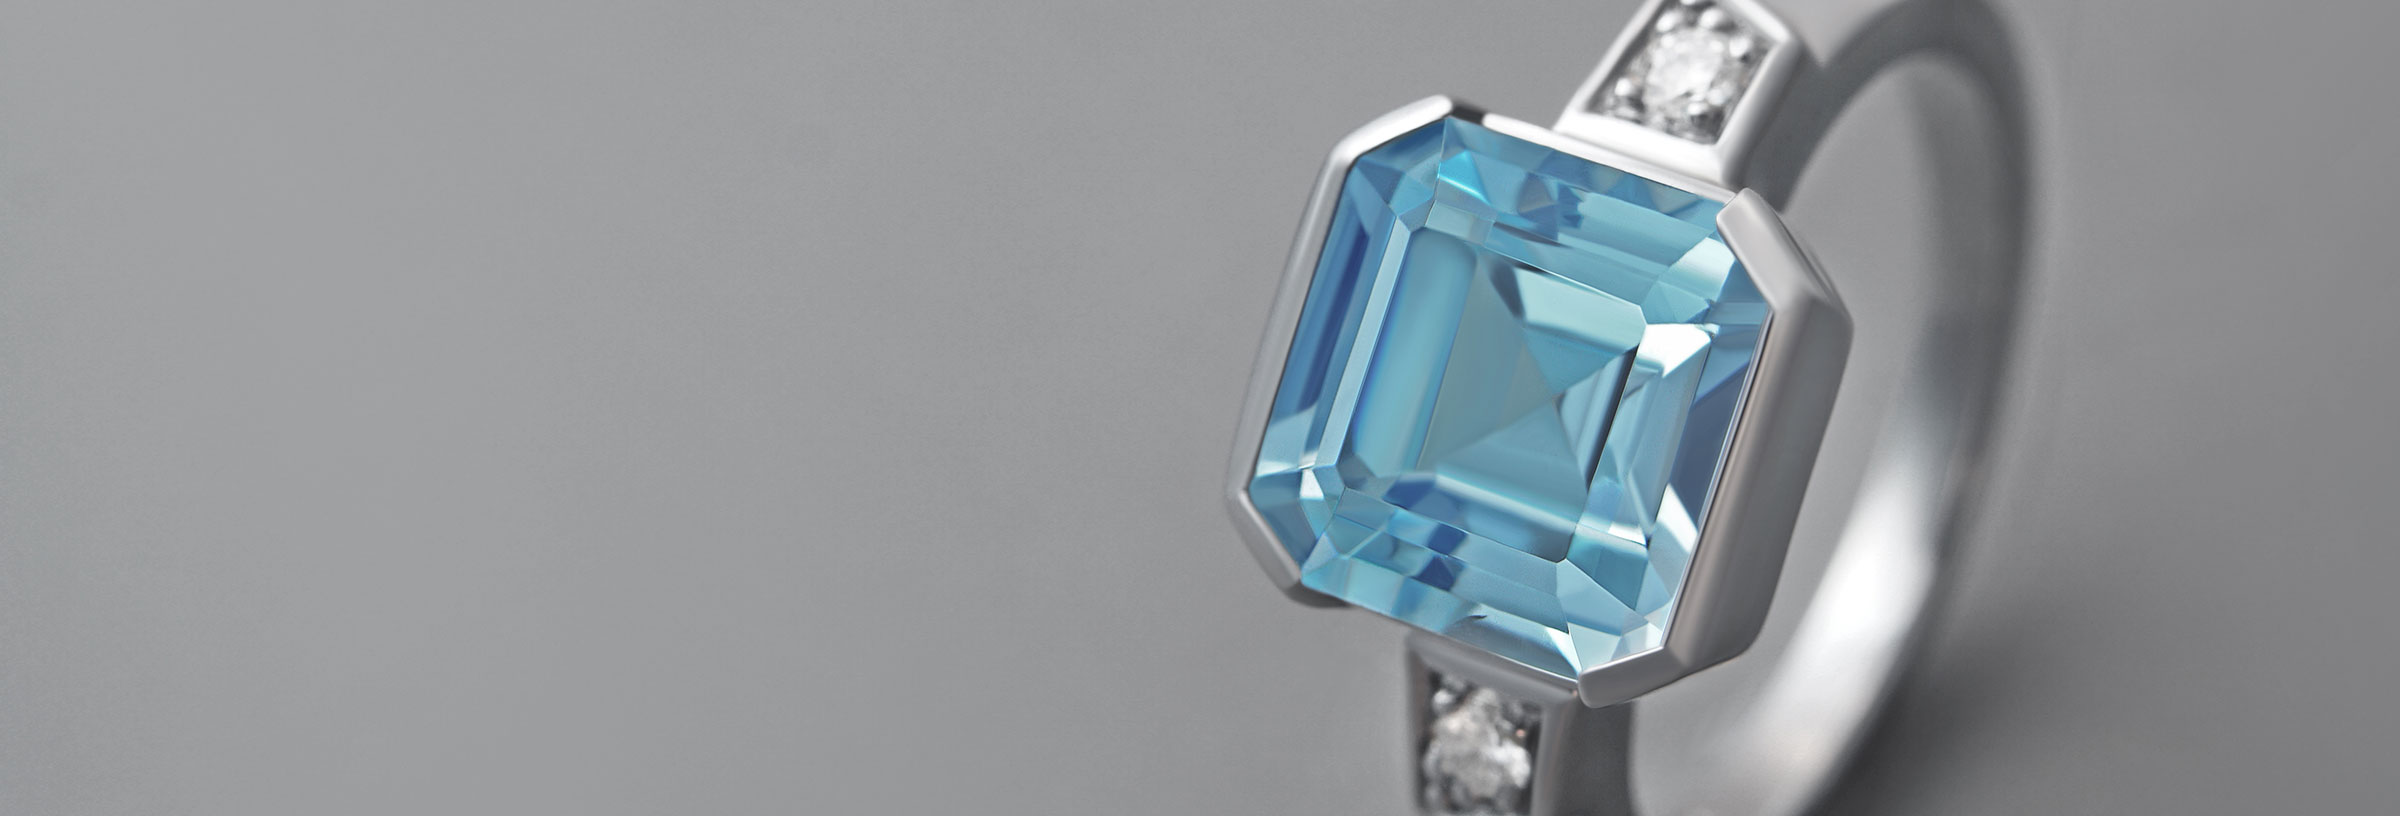 Swiss blue topaz, diamond and palladium art deco style engagement ring